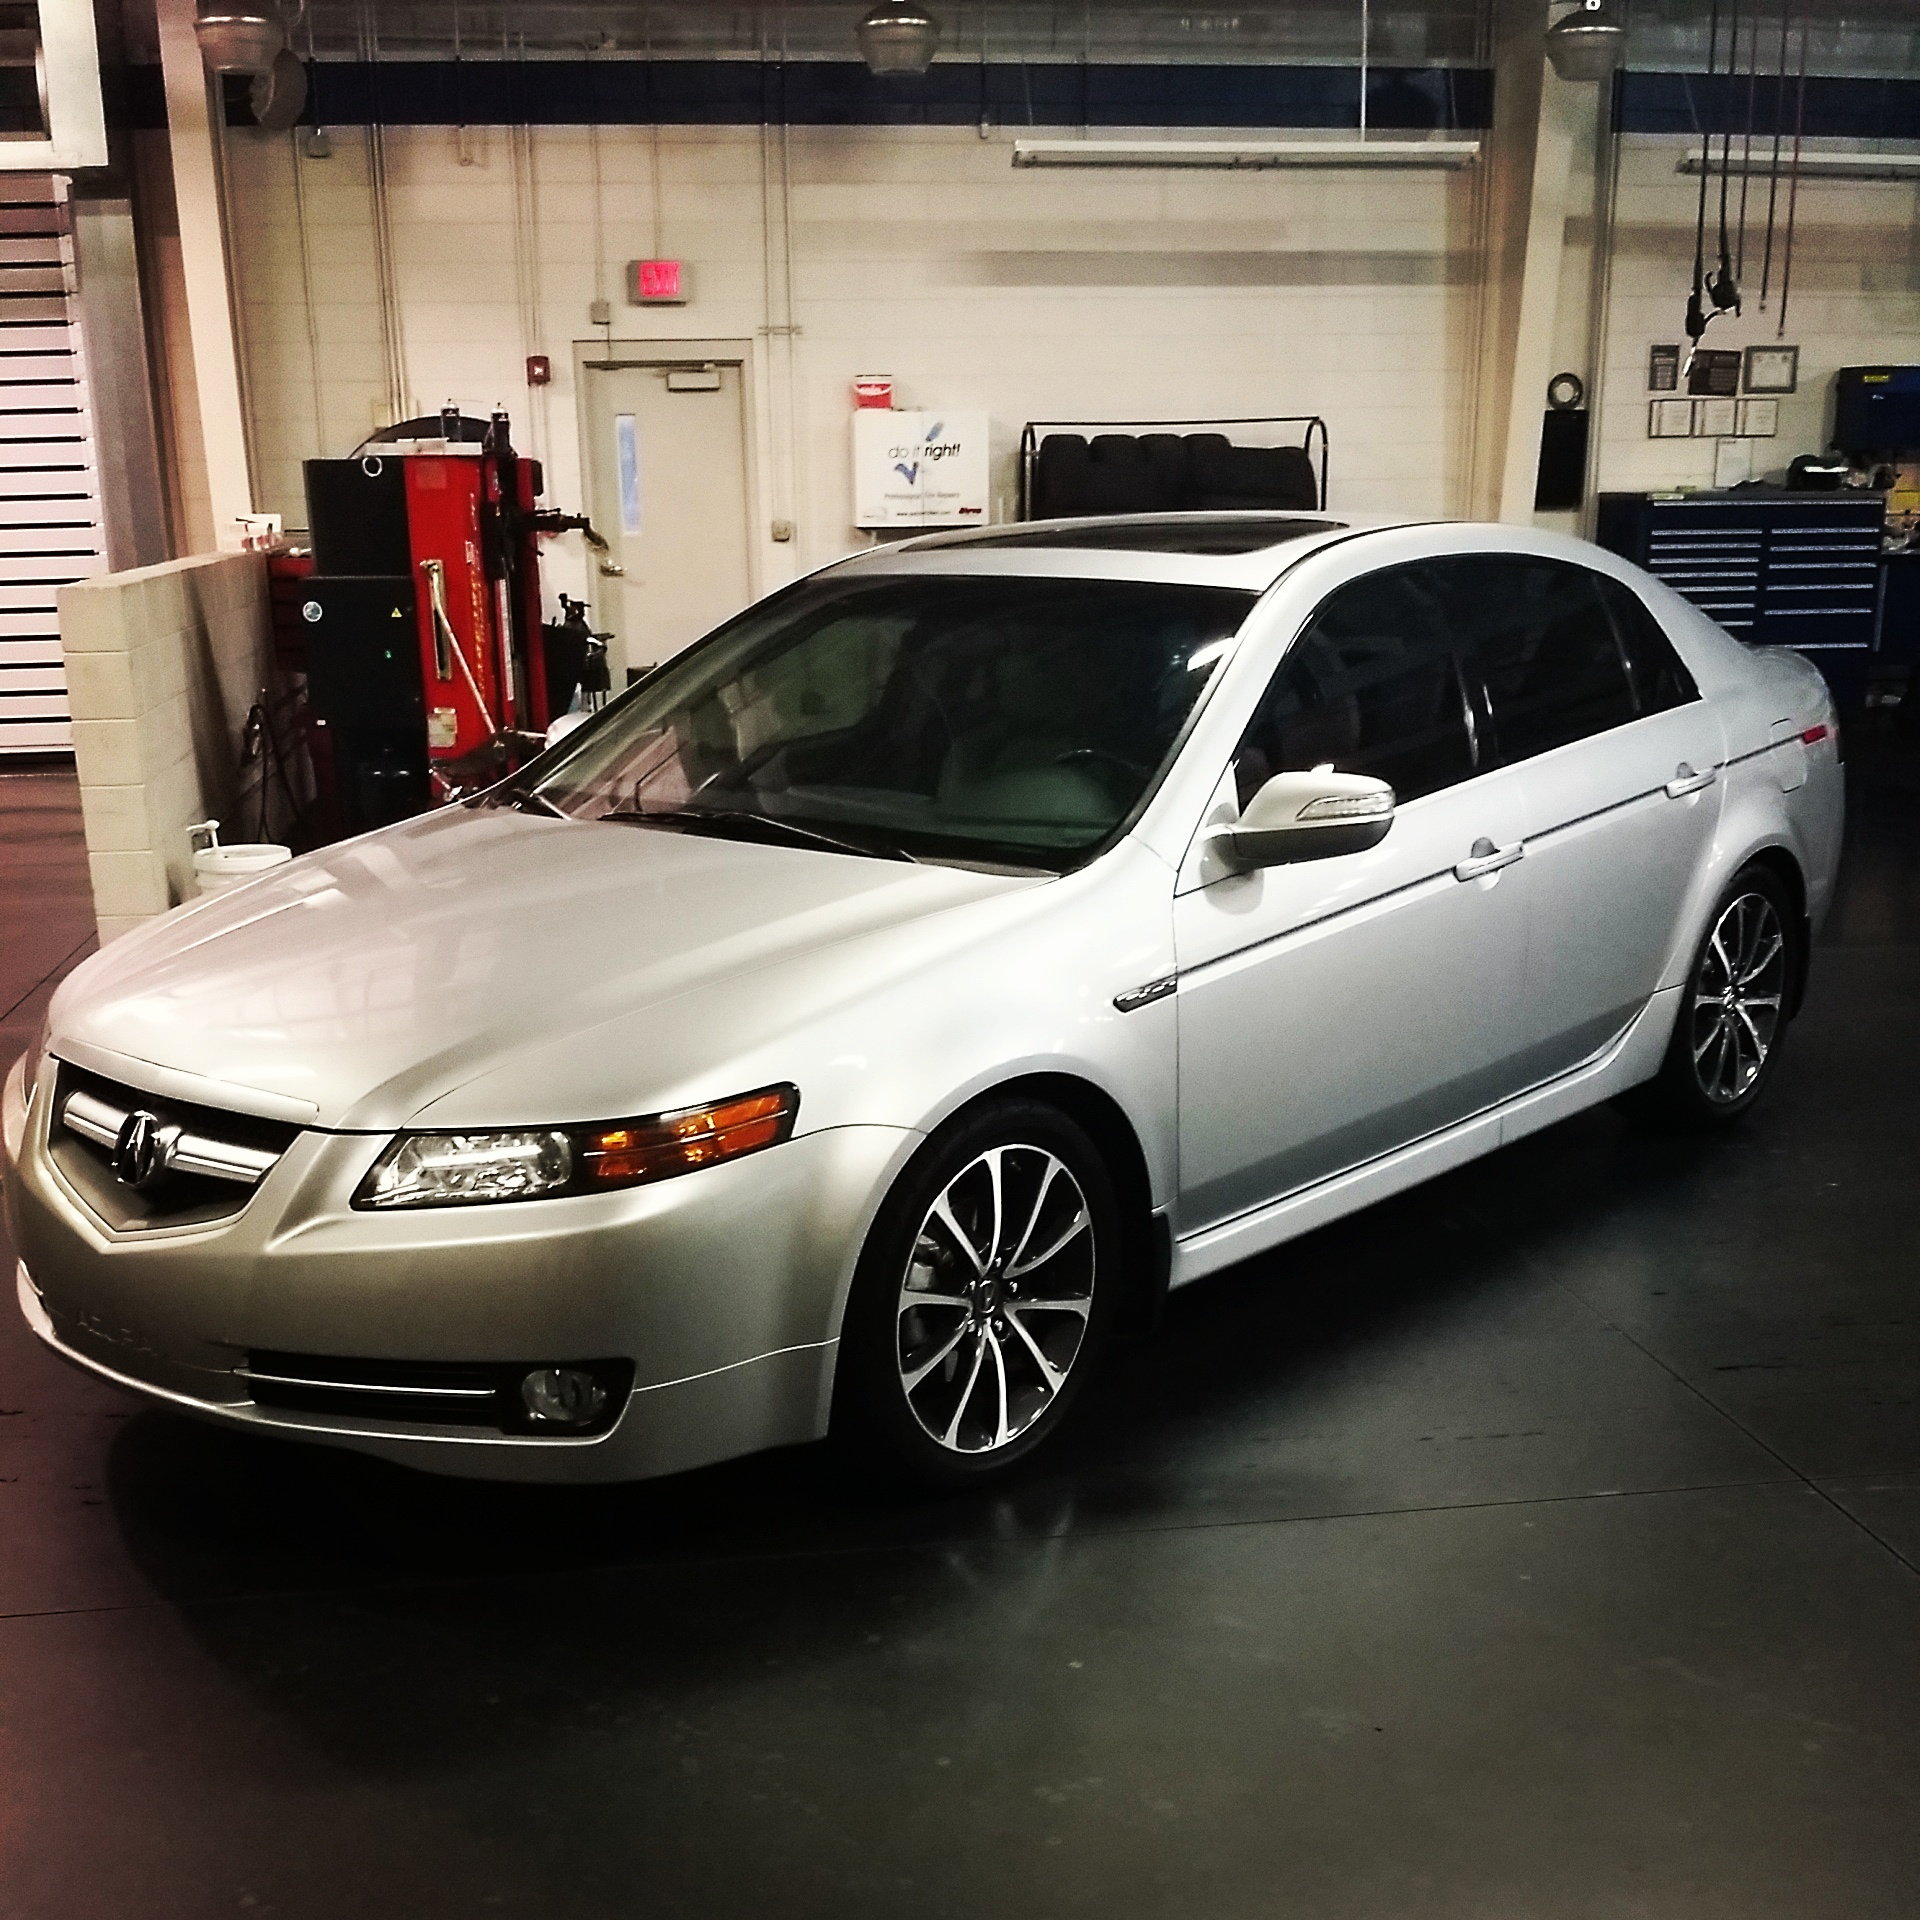 CLOSED 2015 TLX Factory V6 Wheel/Tire Set *Baltimore, MD